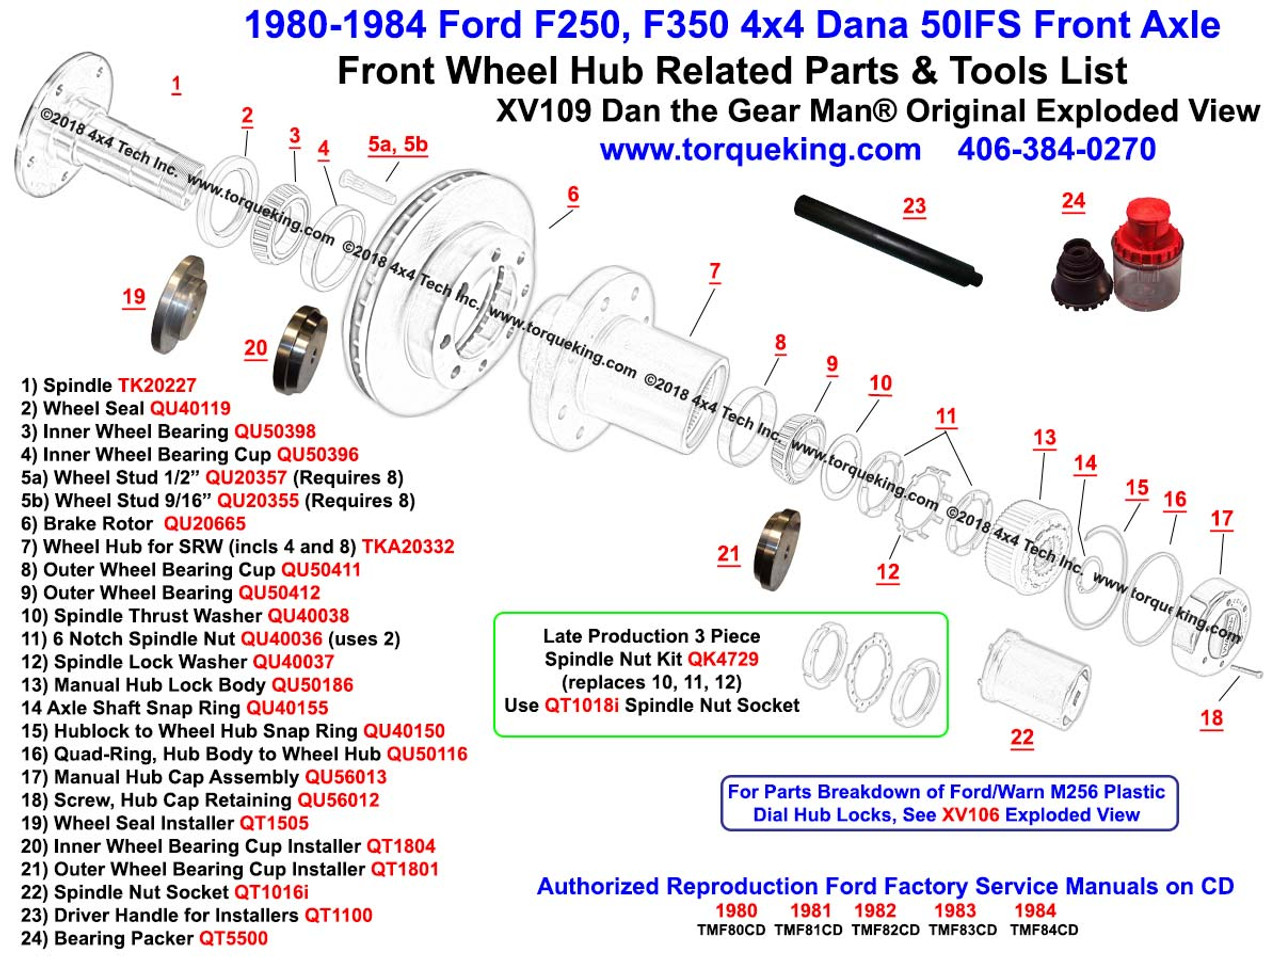 Xv109 1980 1984 Ford F250 F350 Dana 50ifs Front Wheel Hub Exploded View Differential Diagram